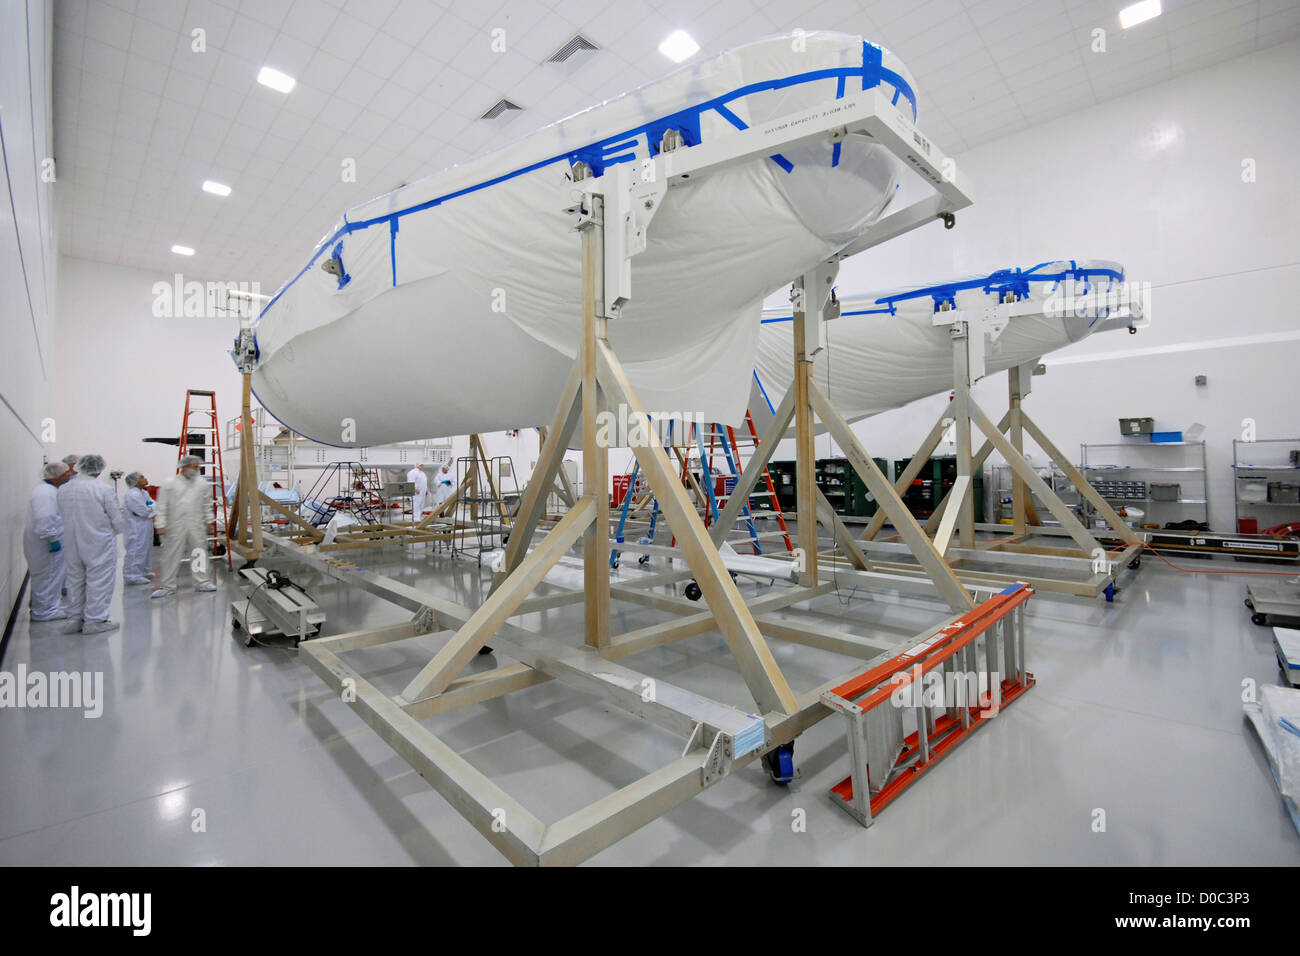 The Delta IV payload fairing (or cover) that will protect GOES-O (Geostationary Operational Environmental Satellite) - Stock Image